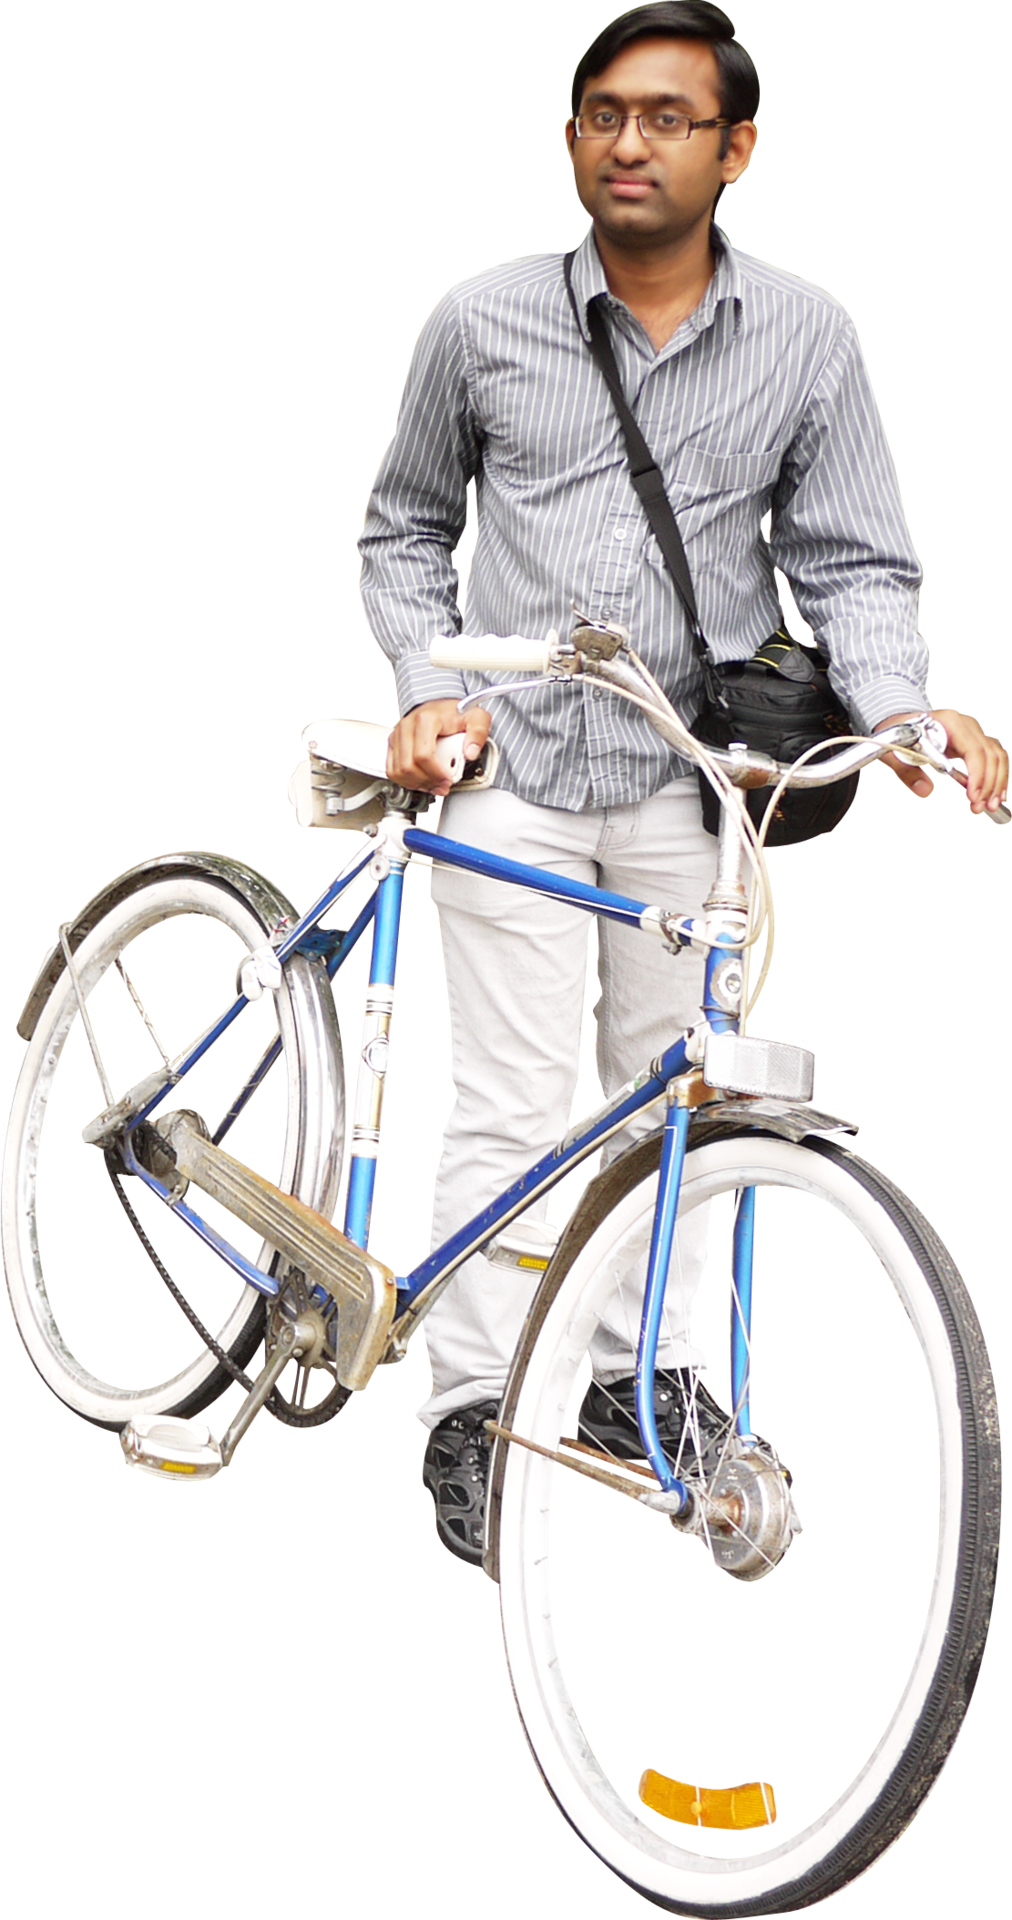 Cycle clipart person. Bicycle png image purepng